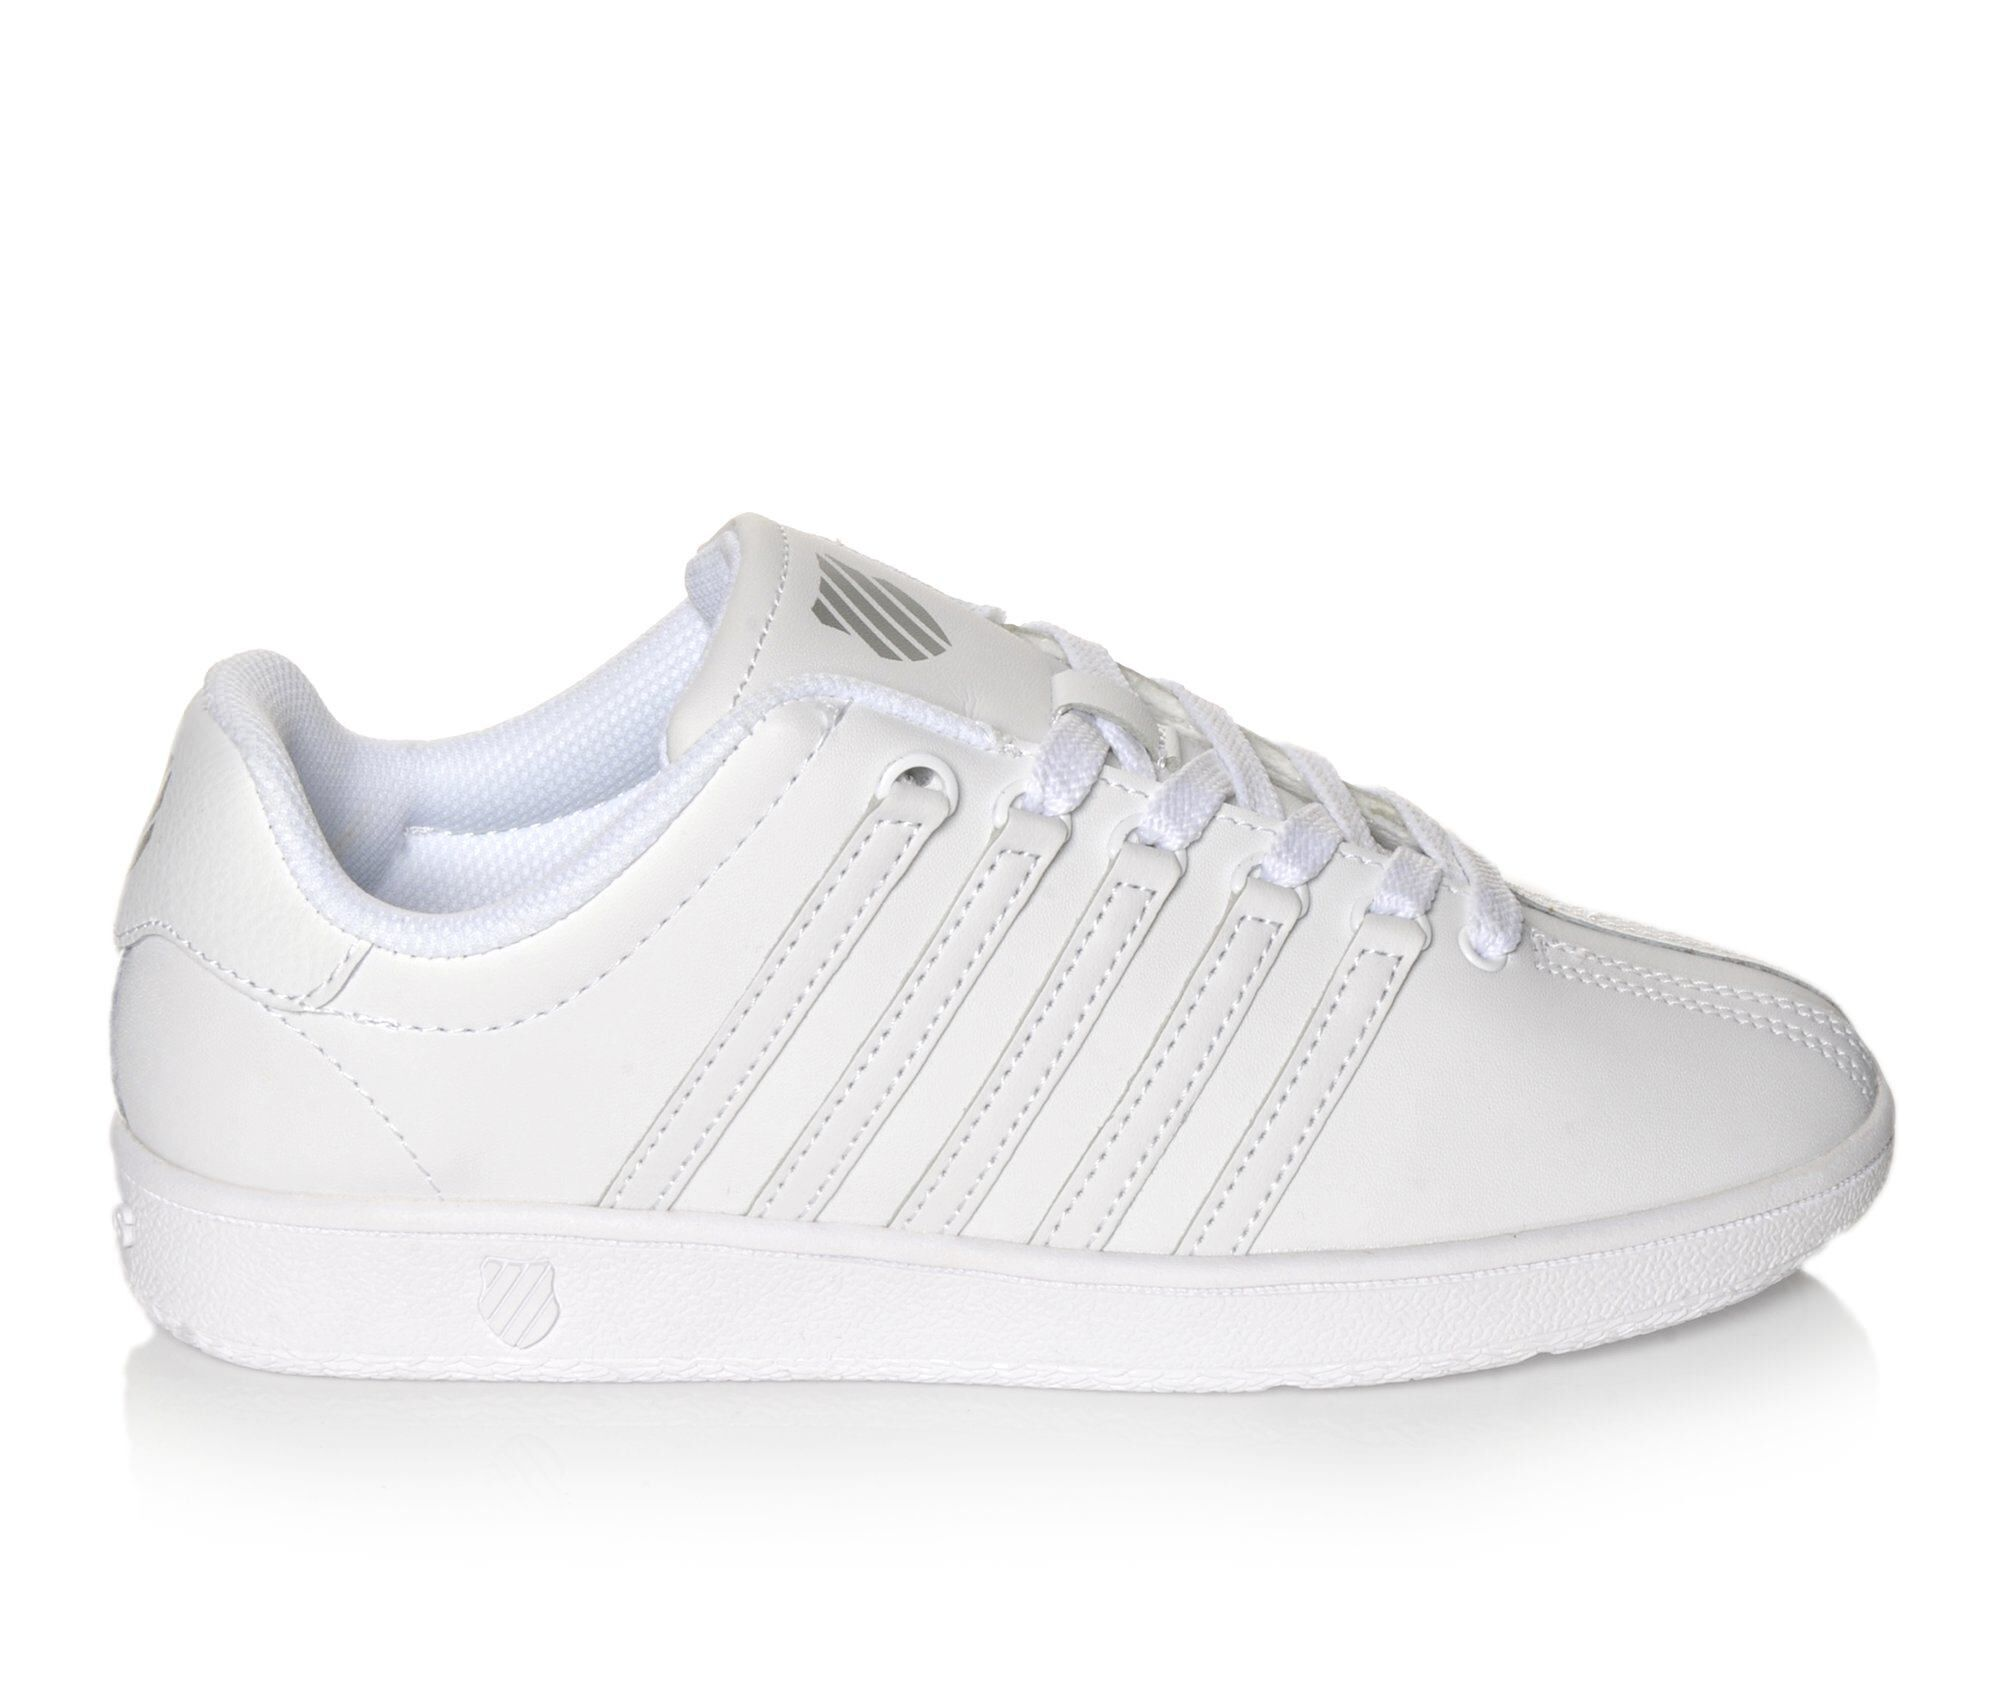 Images Kids KSwiss Classic VN 357 Retro Sneakers